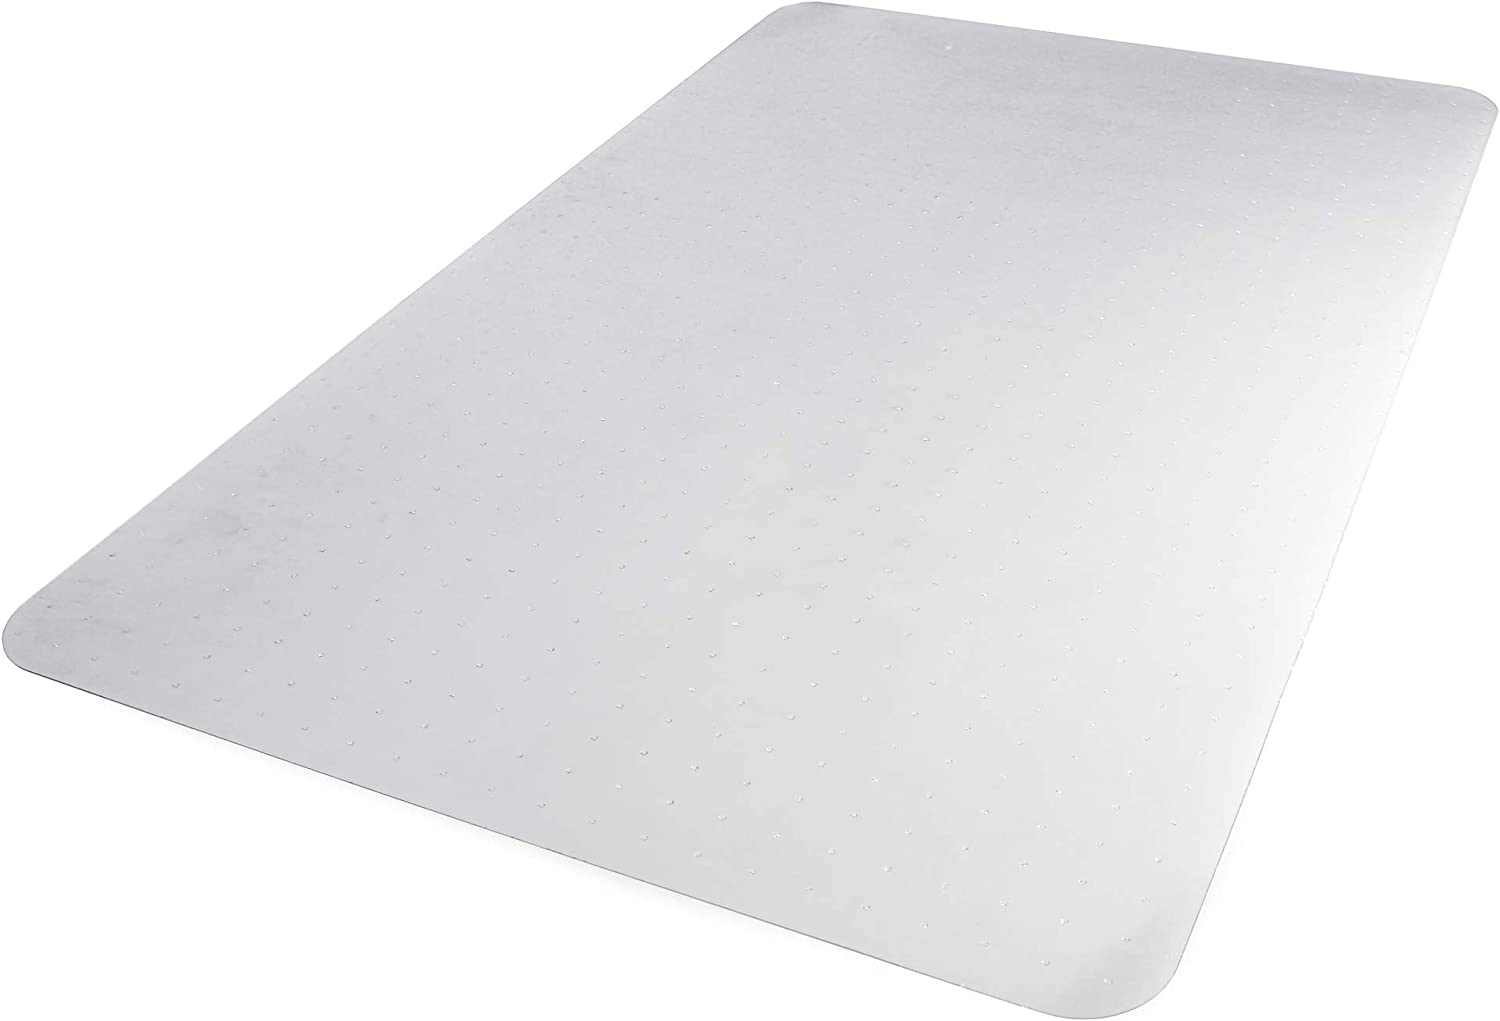 AmazonBasics Polycarbonate Office Carpet Chair Mat, for Low and Medium Pile Carpets, 47